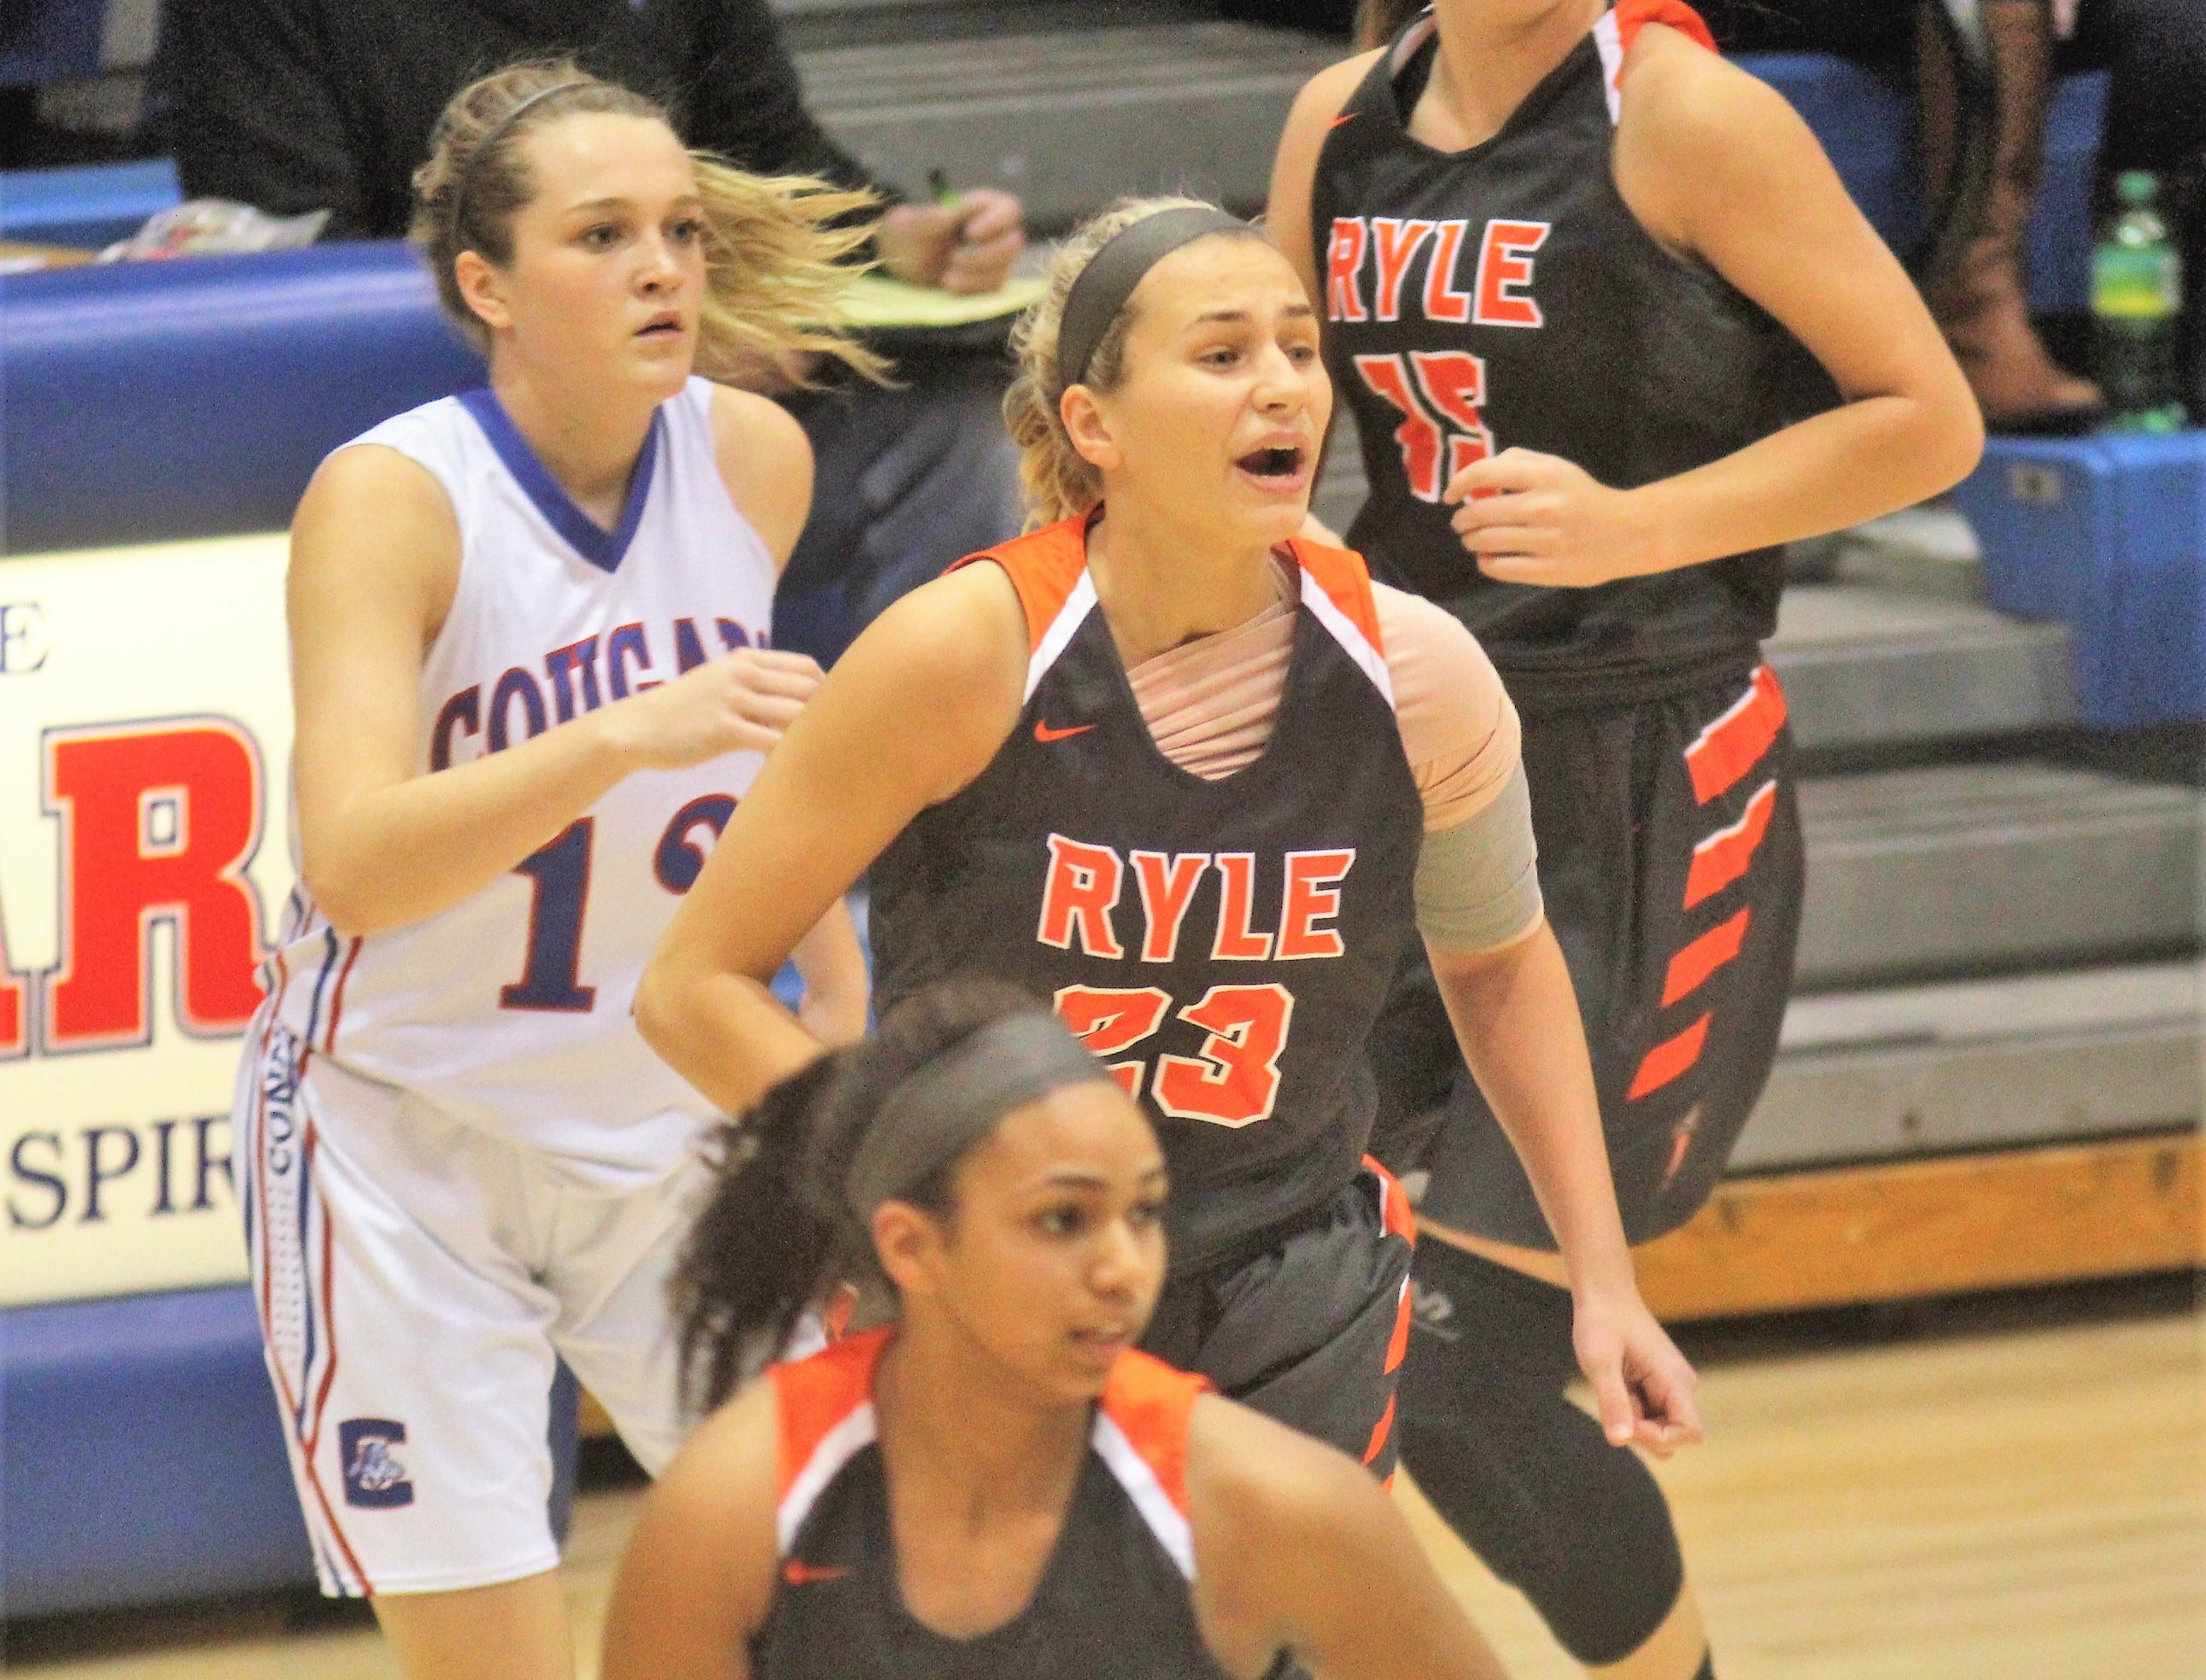 Conner senior Courtney Hurst, 12, and Ryle junior Maddie Scherr, 23, look for the ball as Ryle defeated Conner 60-49 in a girls basketball district game Dec. 7, 2018 at Conner High School, Hebron KY.